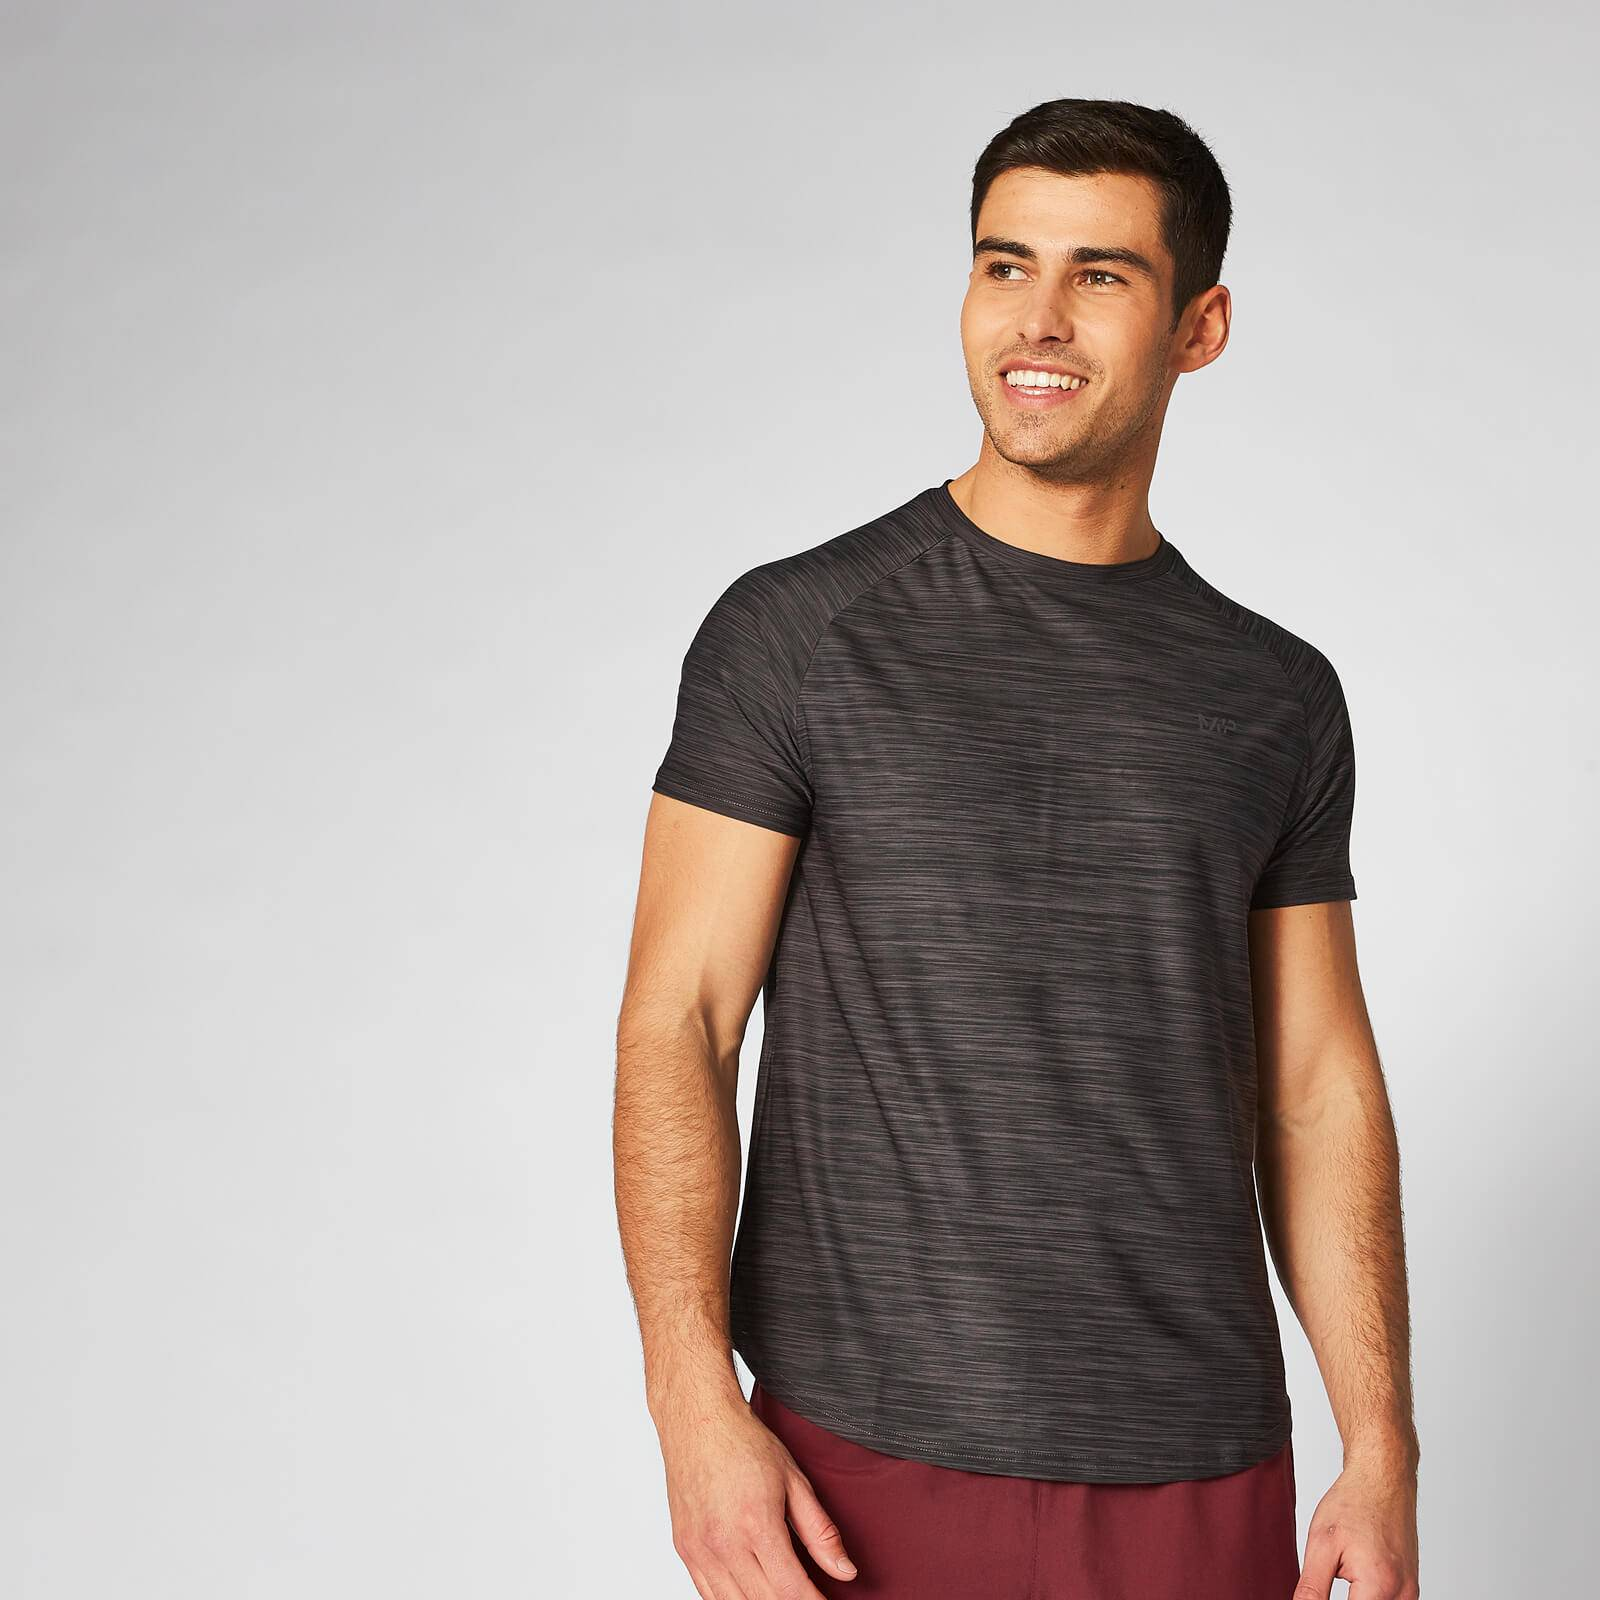 Myprotein Dry-Tech Infinity T-Shirt - Slate Marl - S